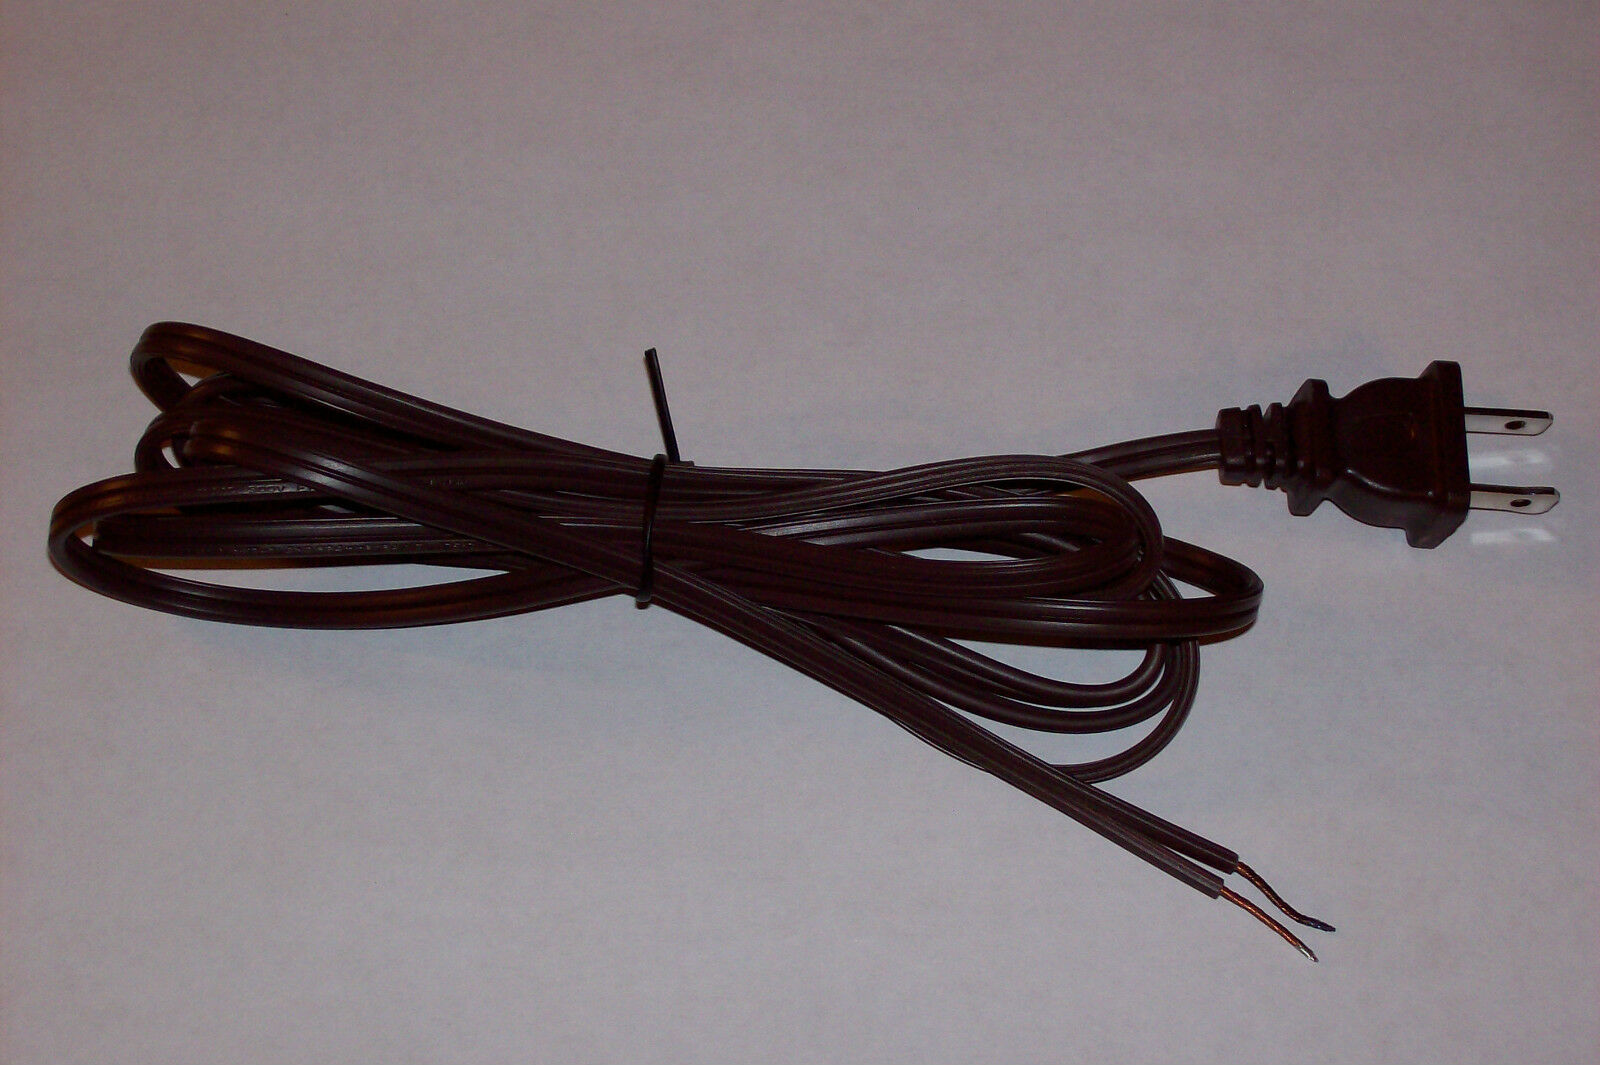 8 Brown Lamp Cord With Polarized Plug 18 2 SPT 1 Lamp Part 30246 J ...